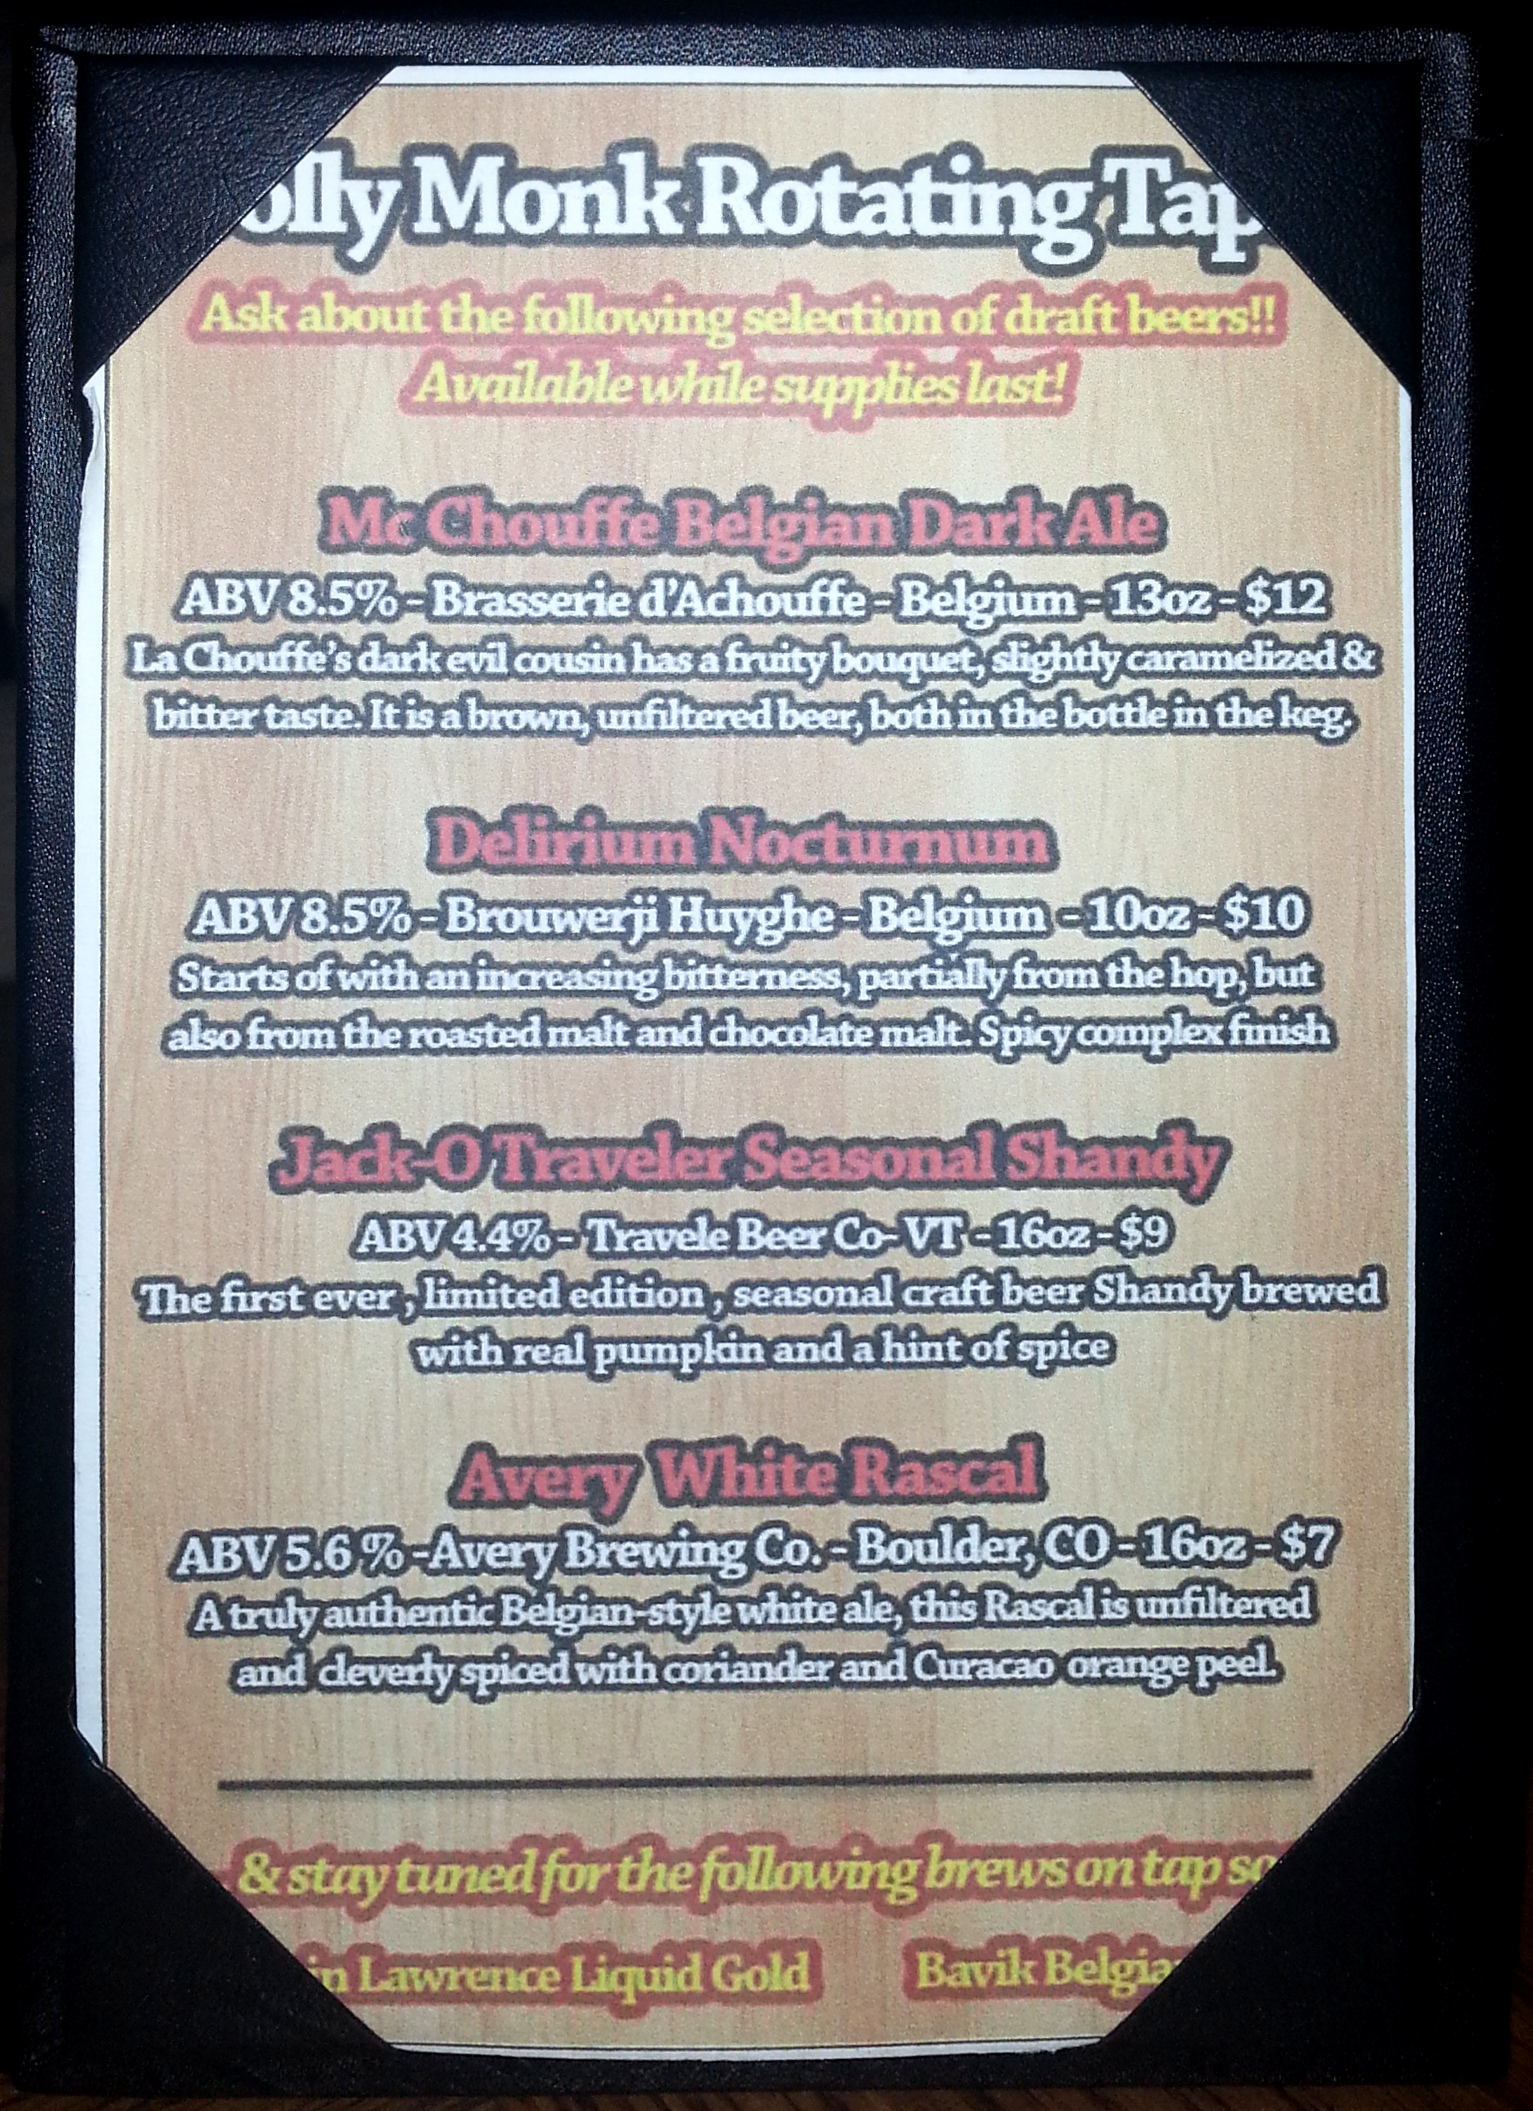 Jolly Monk menu